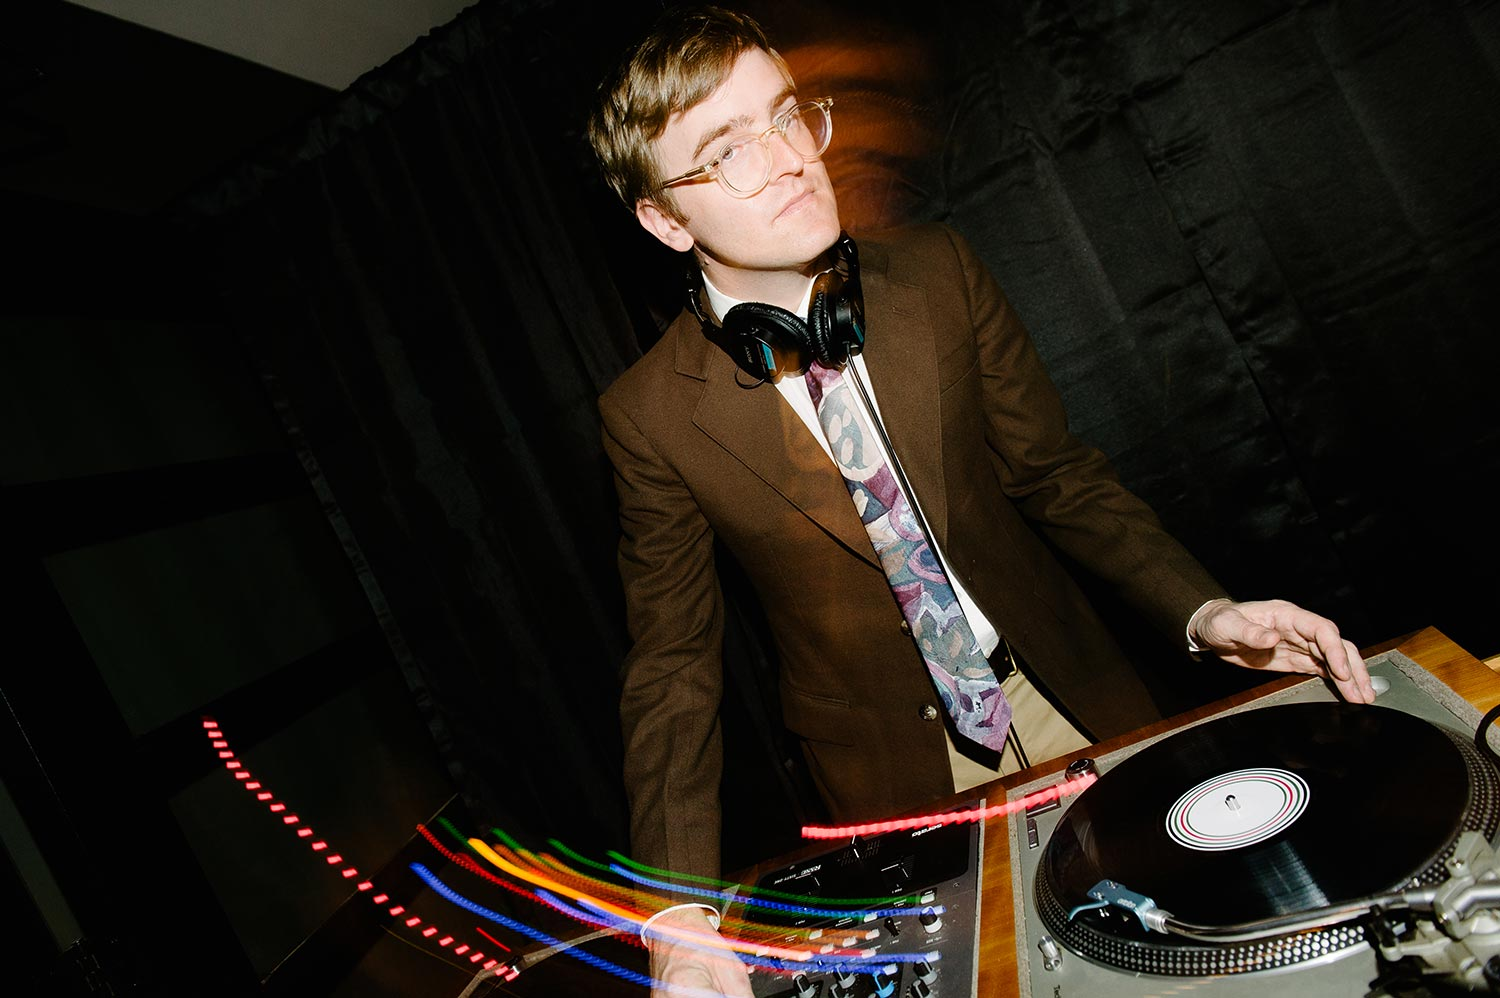 wedding dj spins records on turntable